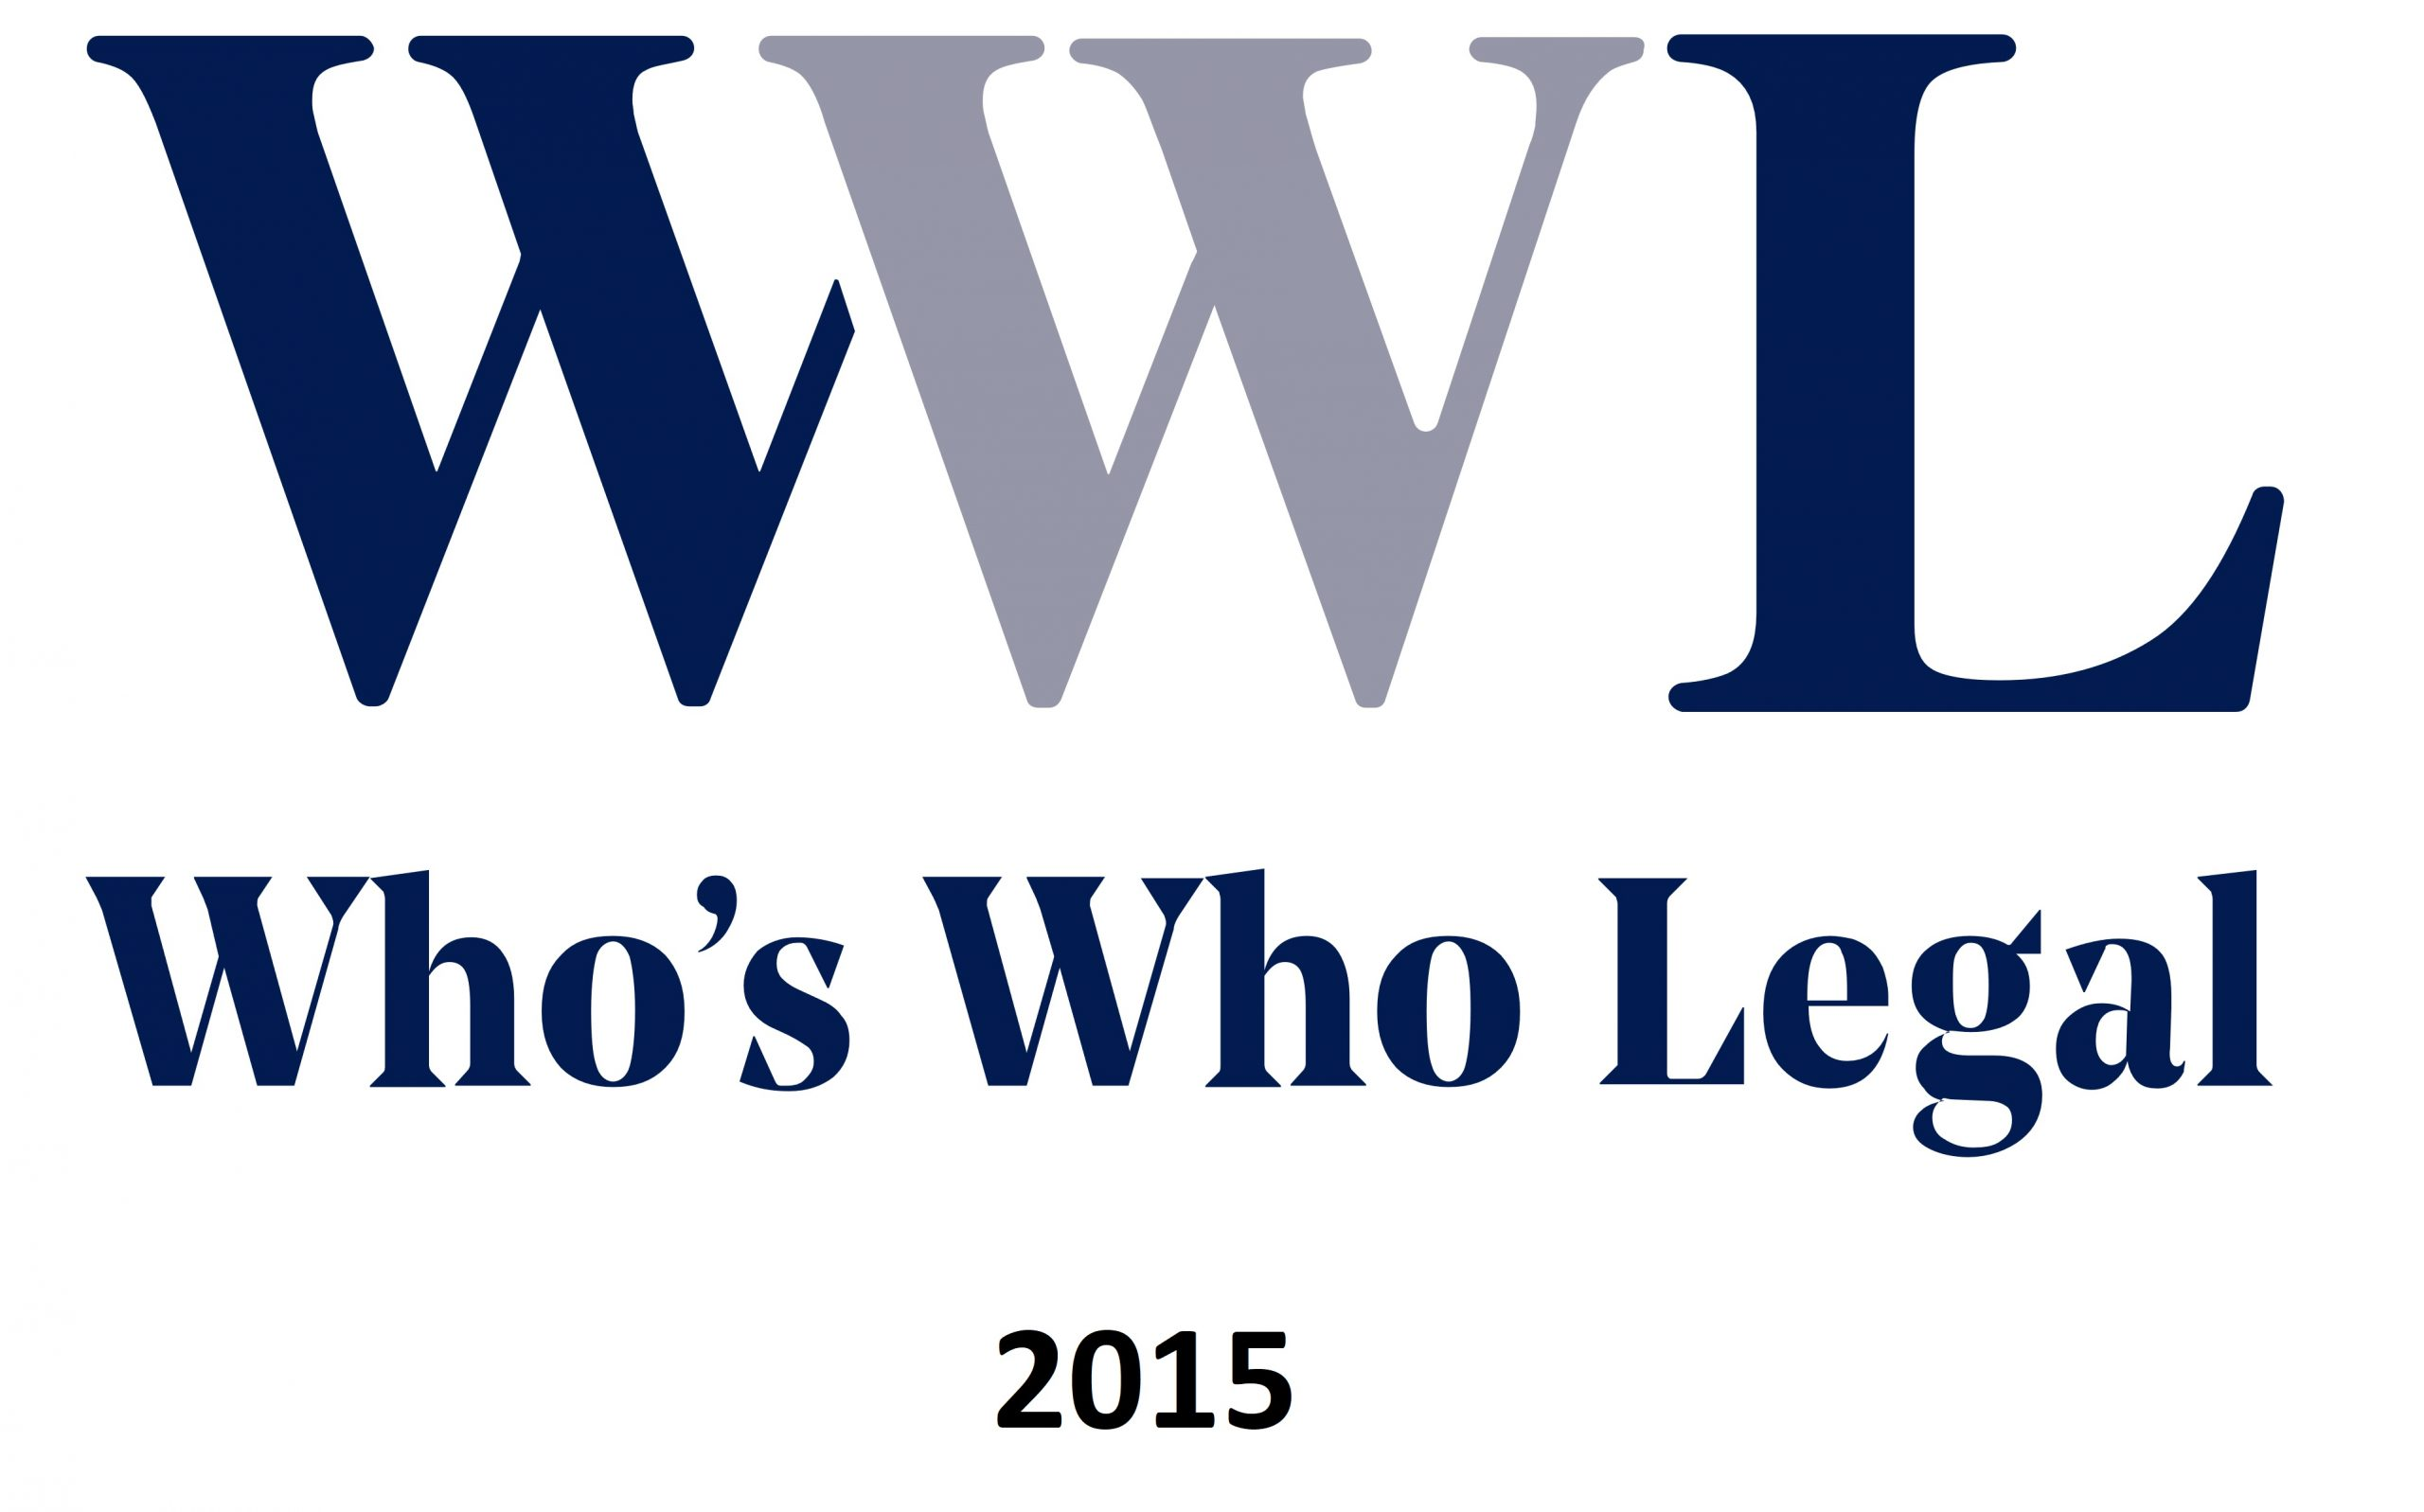 Reconocimiento Who's Who Legal 2015